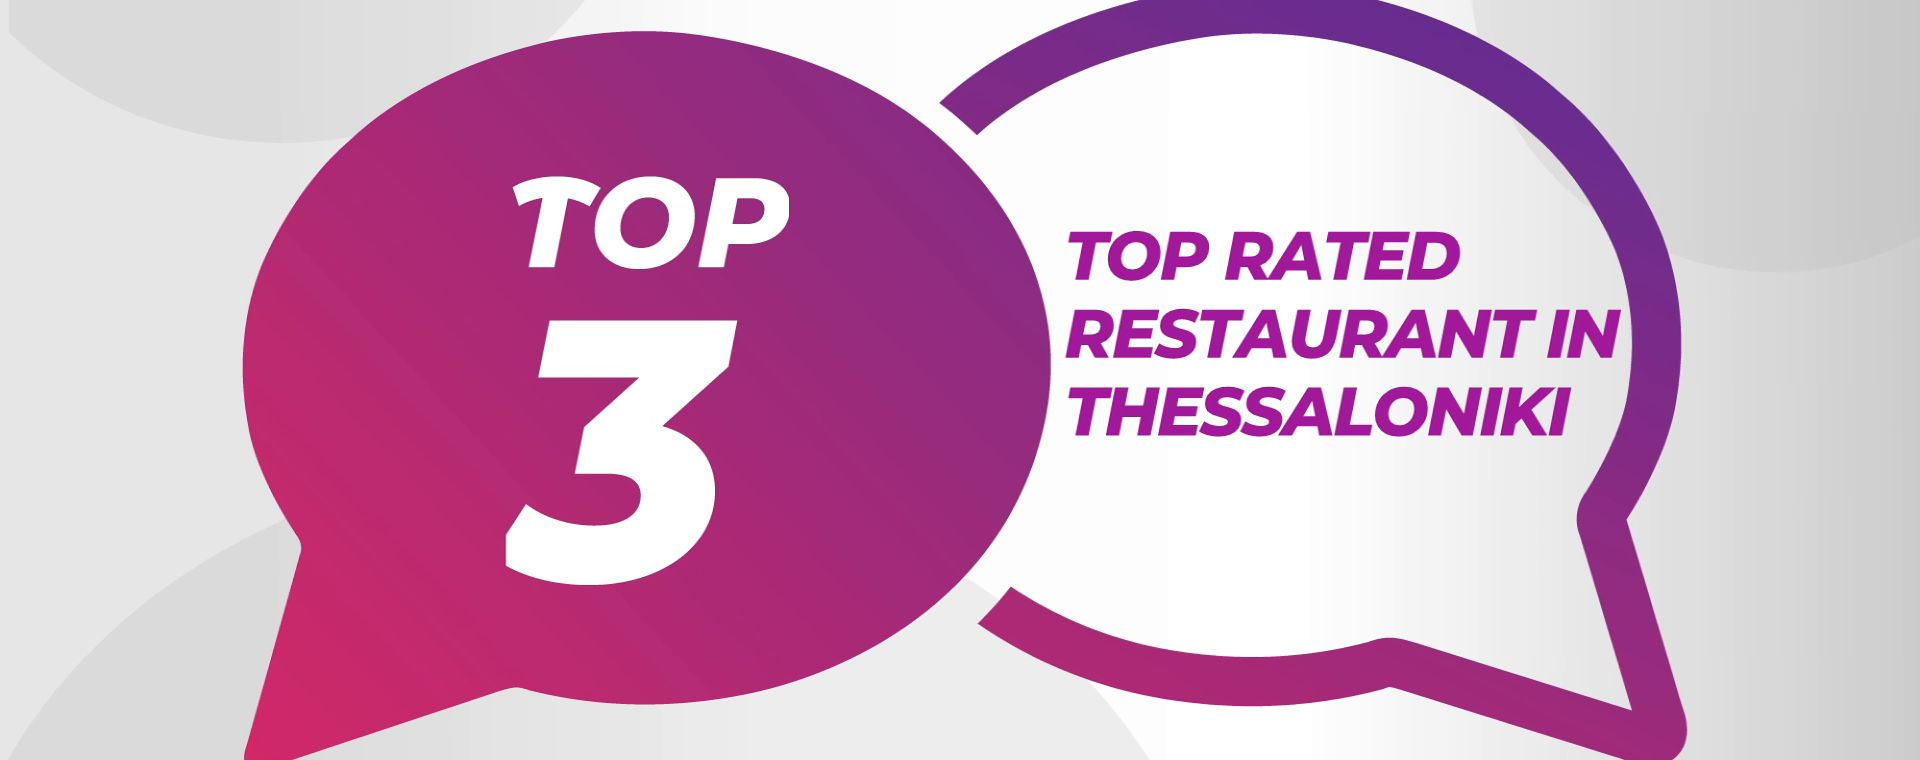 TOP RATED RESTAURANT IN THESSALONIKI